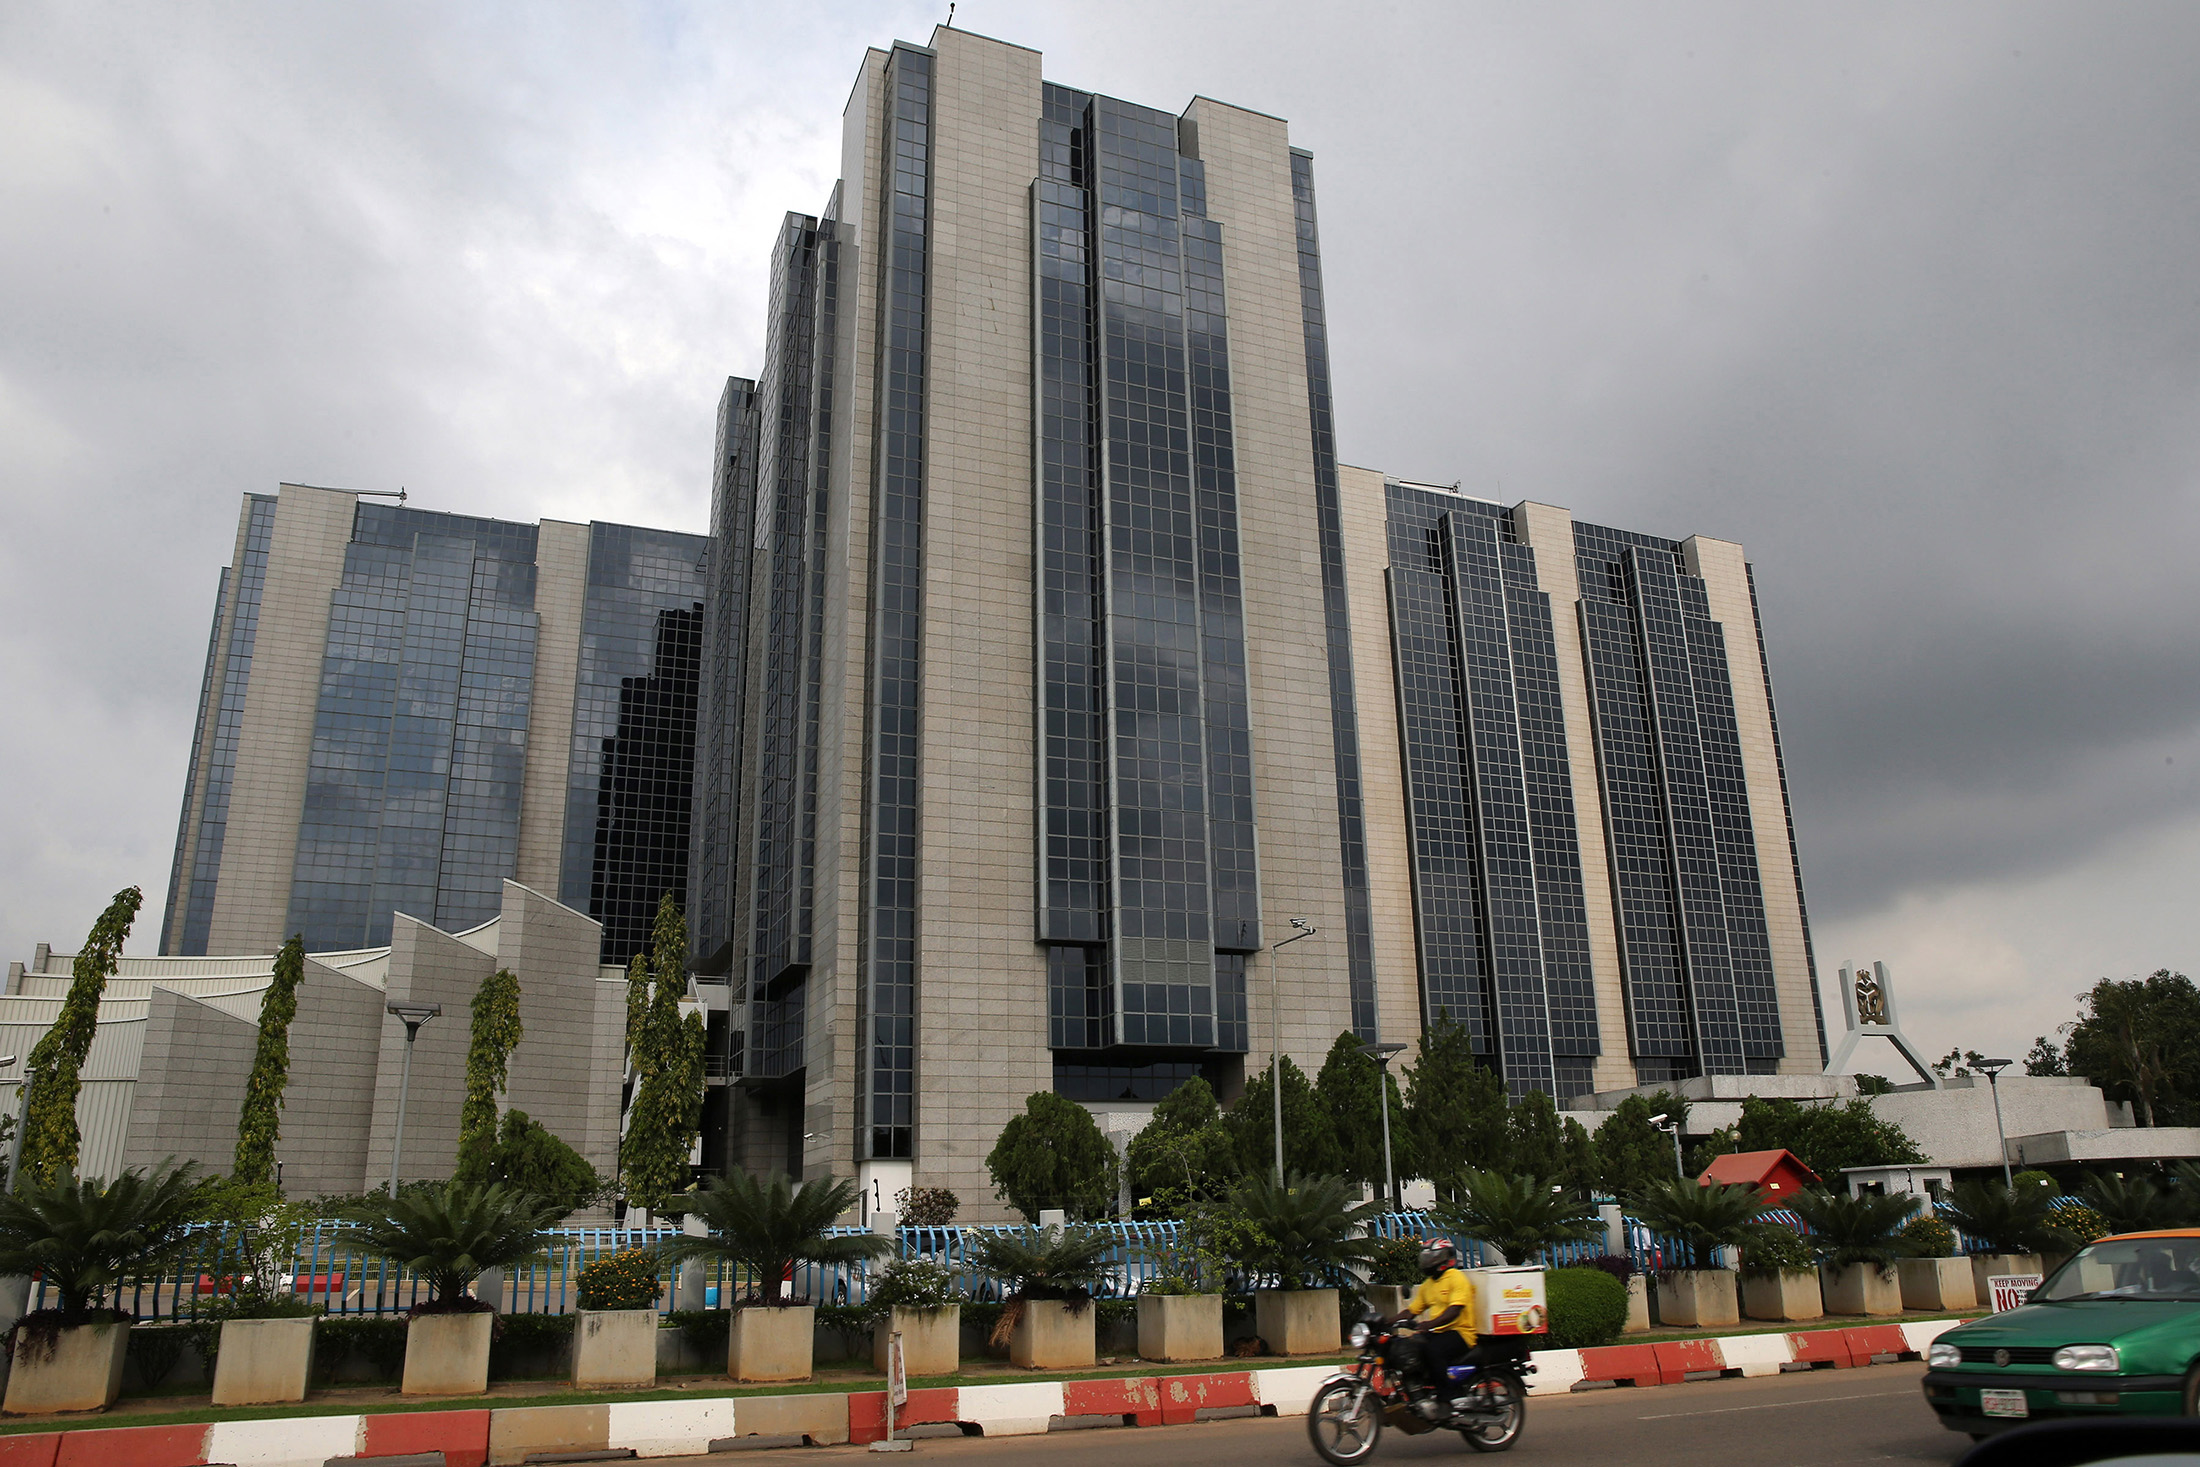 pictures of central bank of nigeria